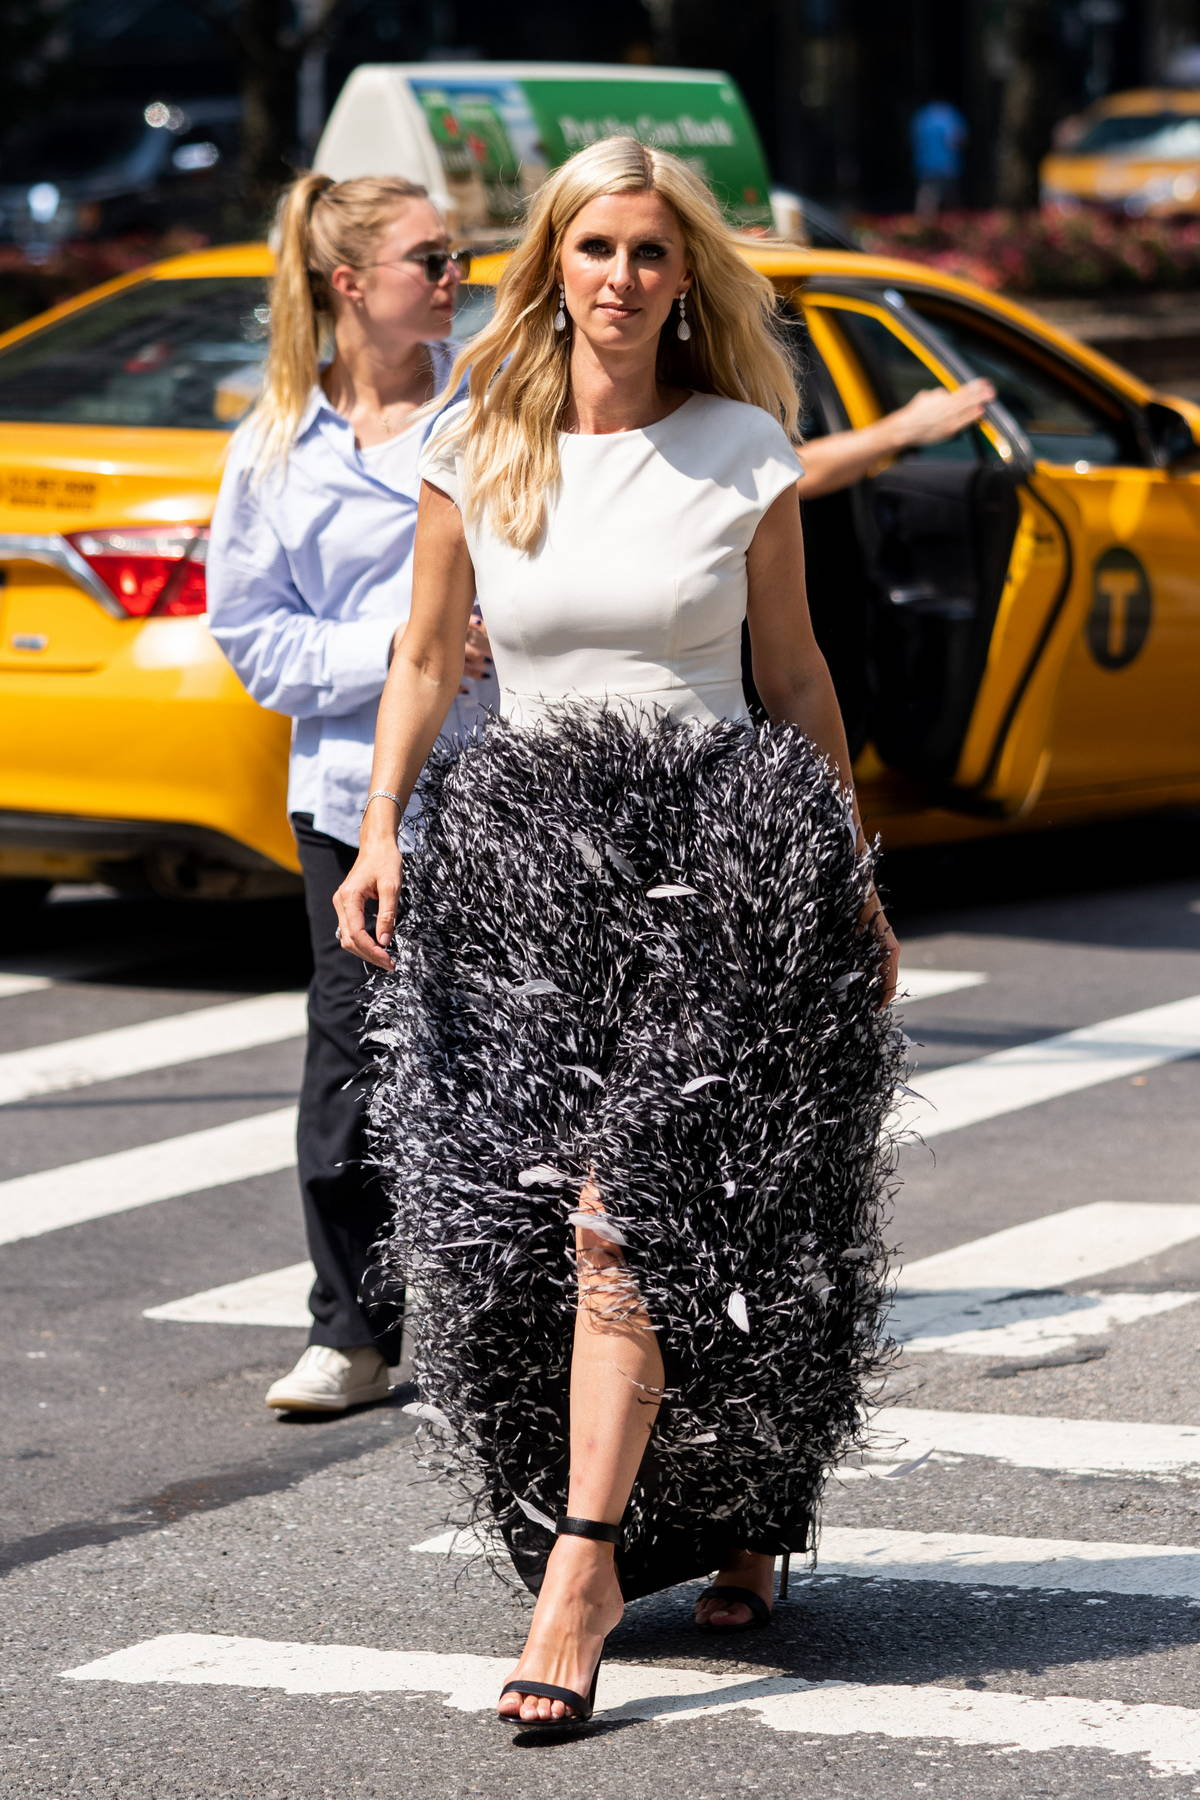 Nicky Hilton looks fashionable in feather skirt on the set of a photoshoot for Avenue Magazine in New York City